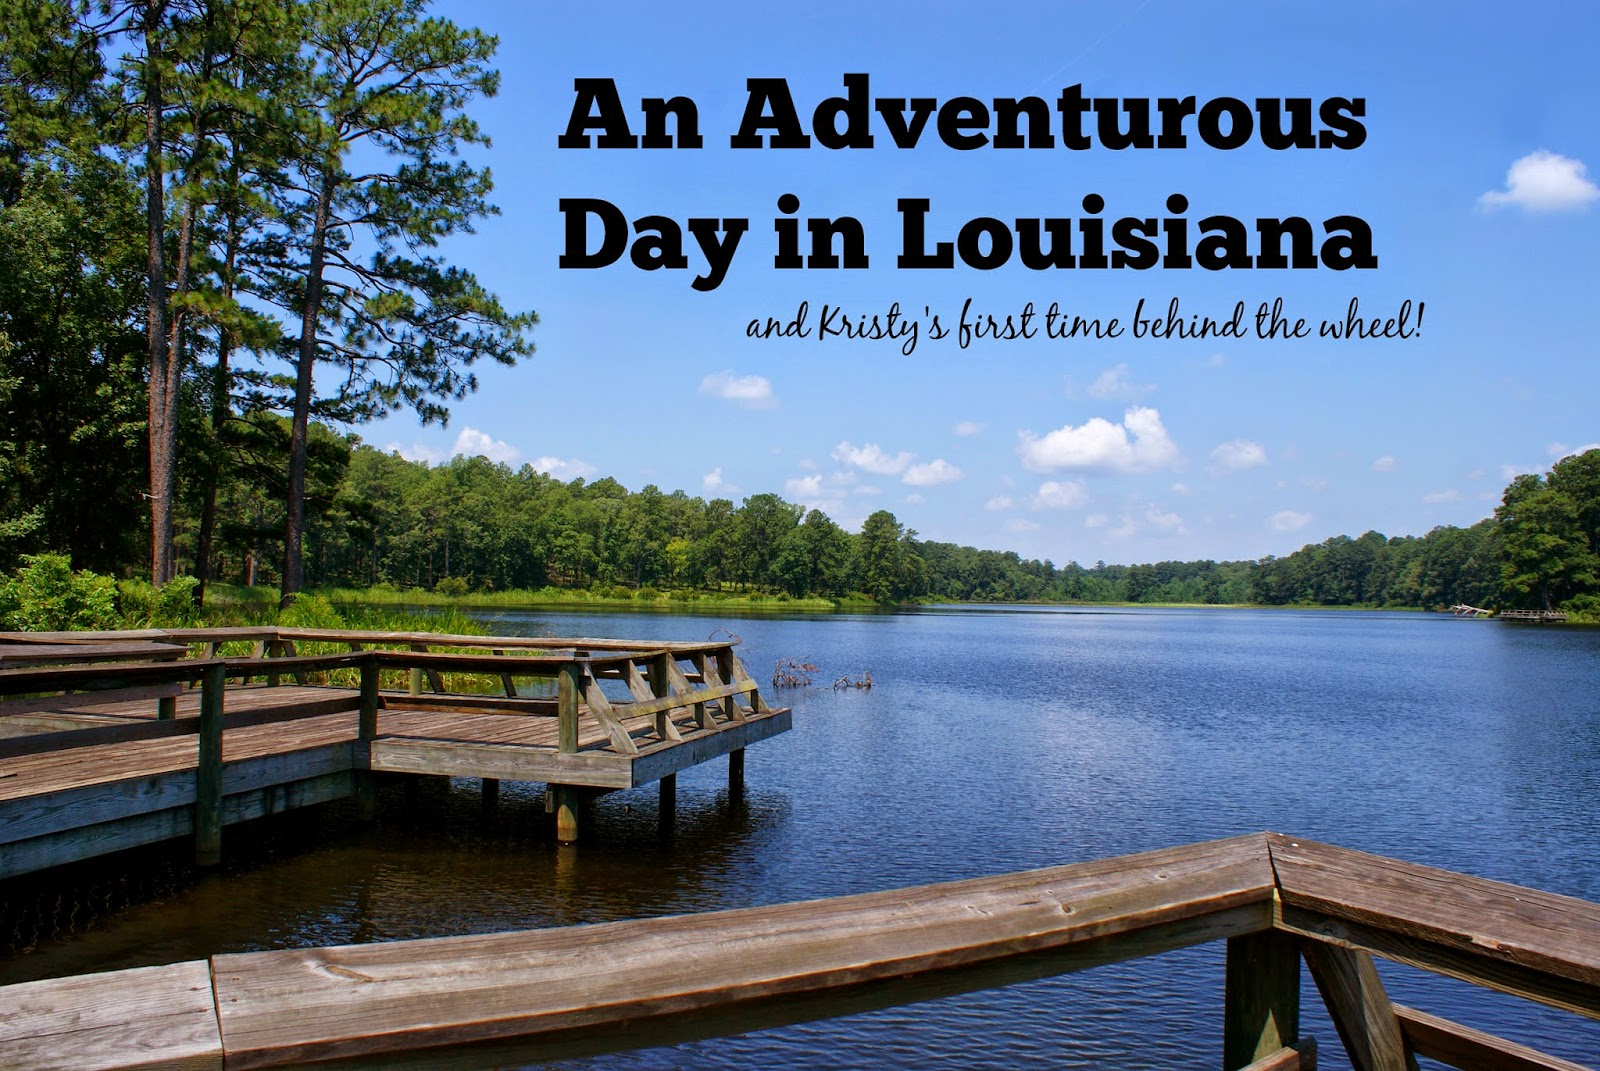 An Adventurous Day in Louisiana